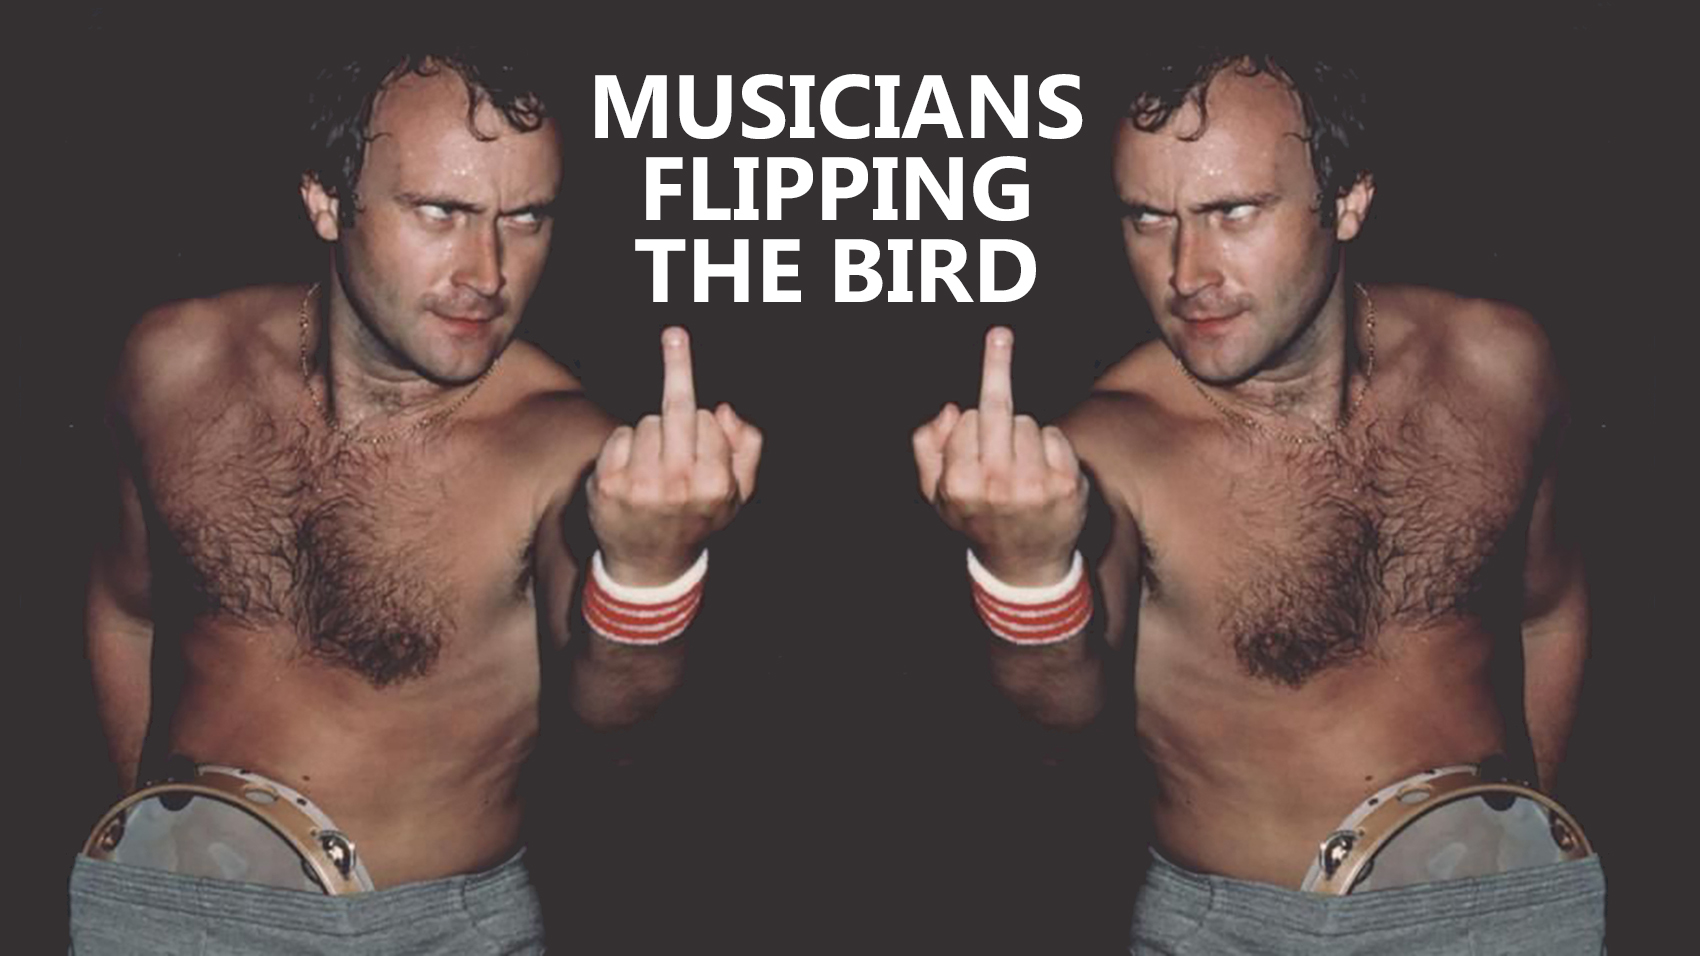 musicians flipping the bird